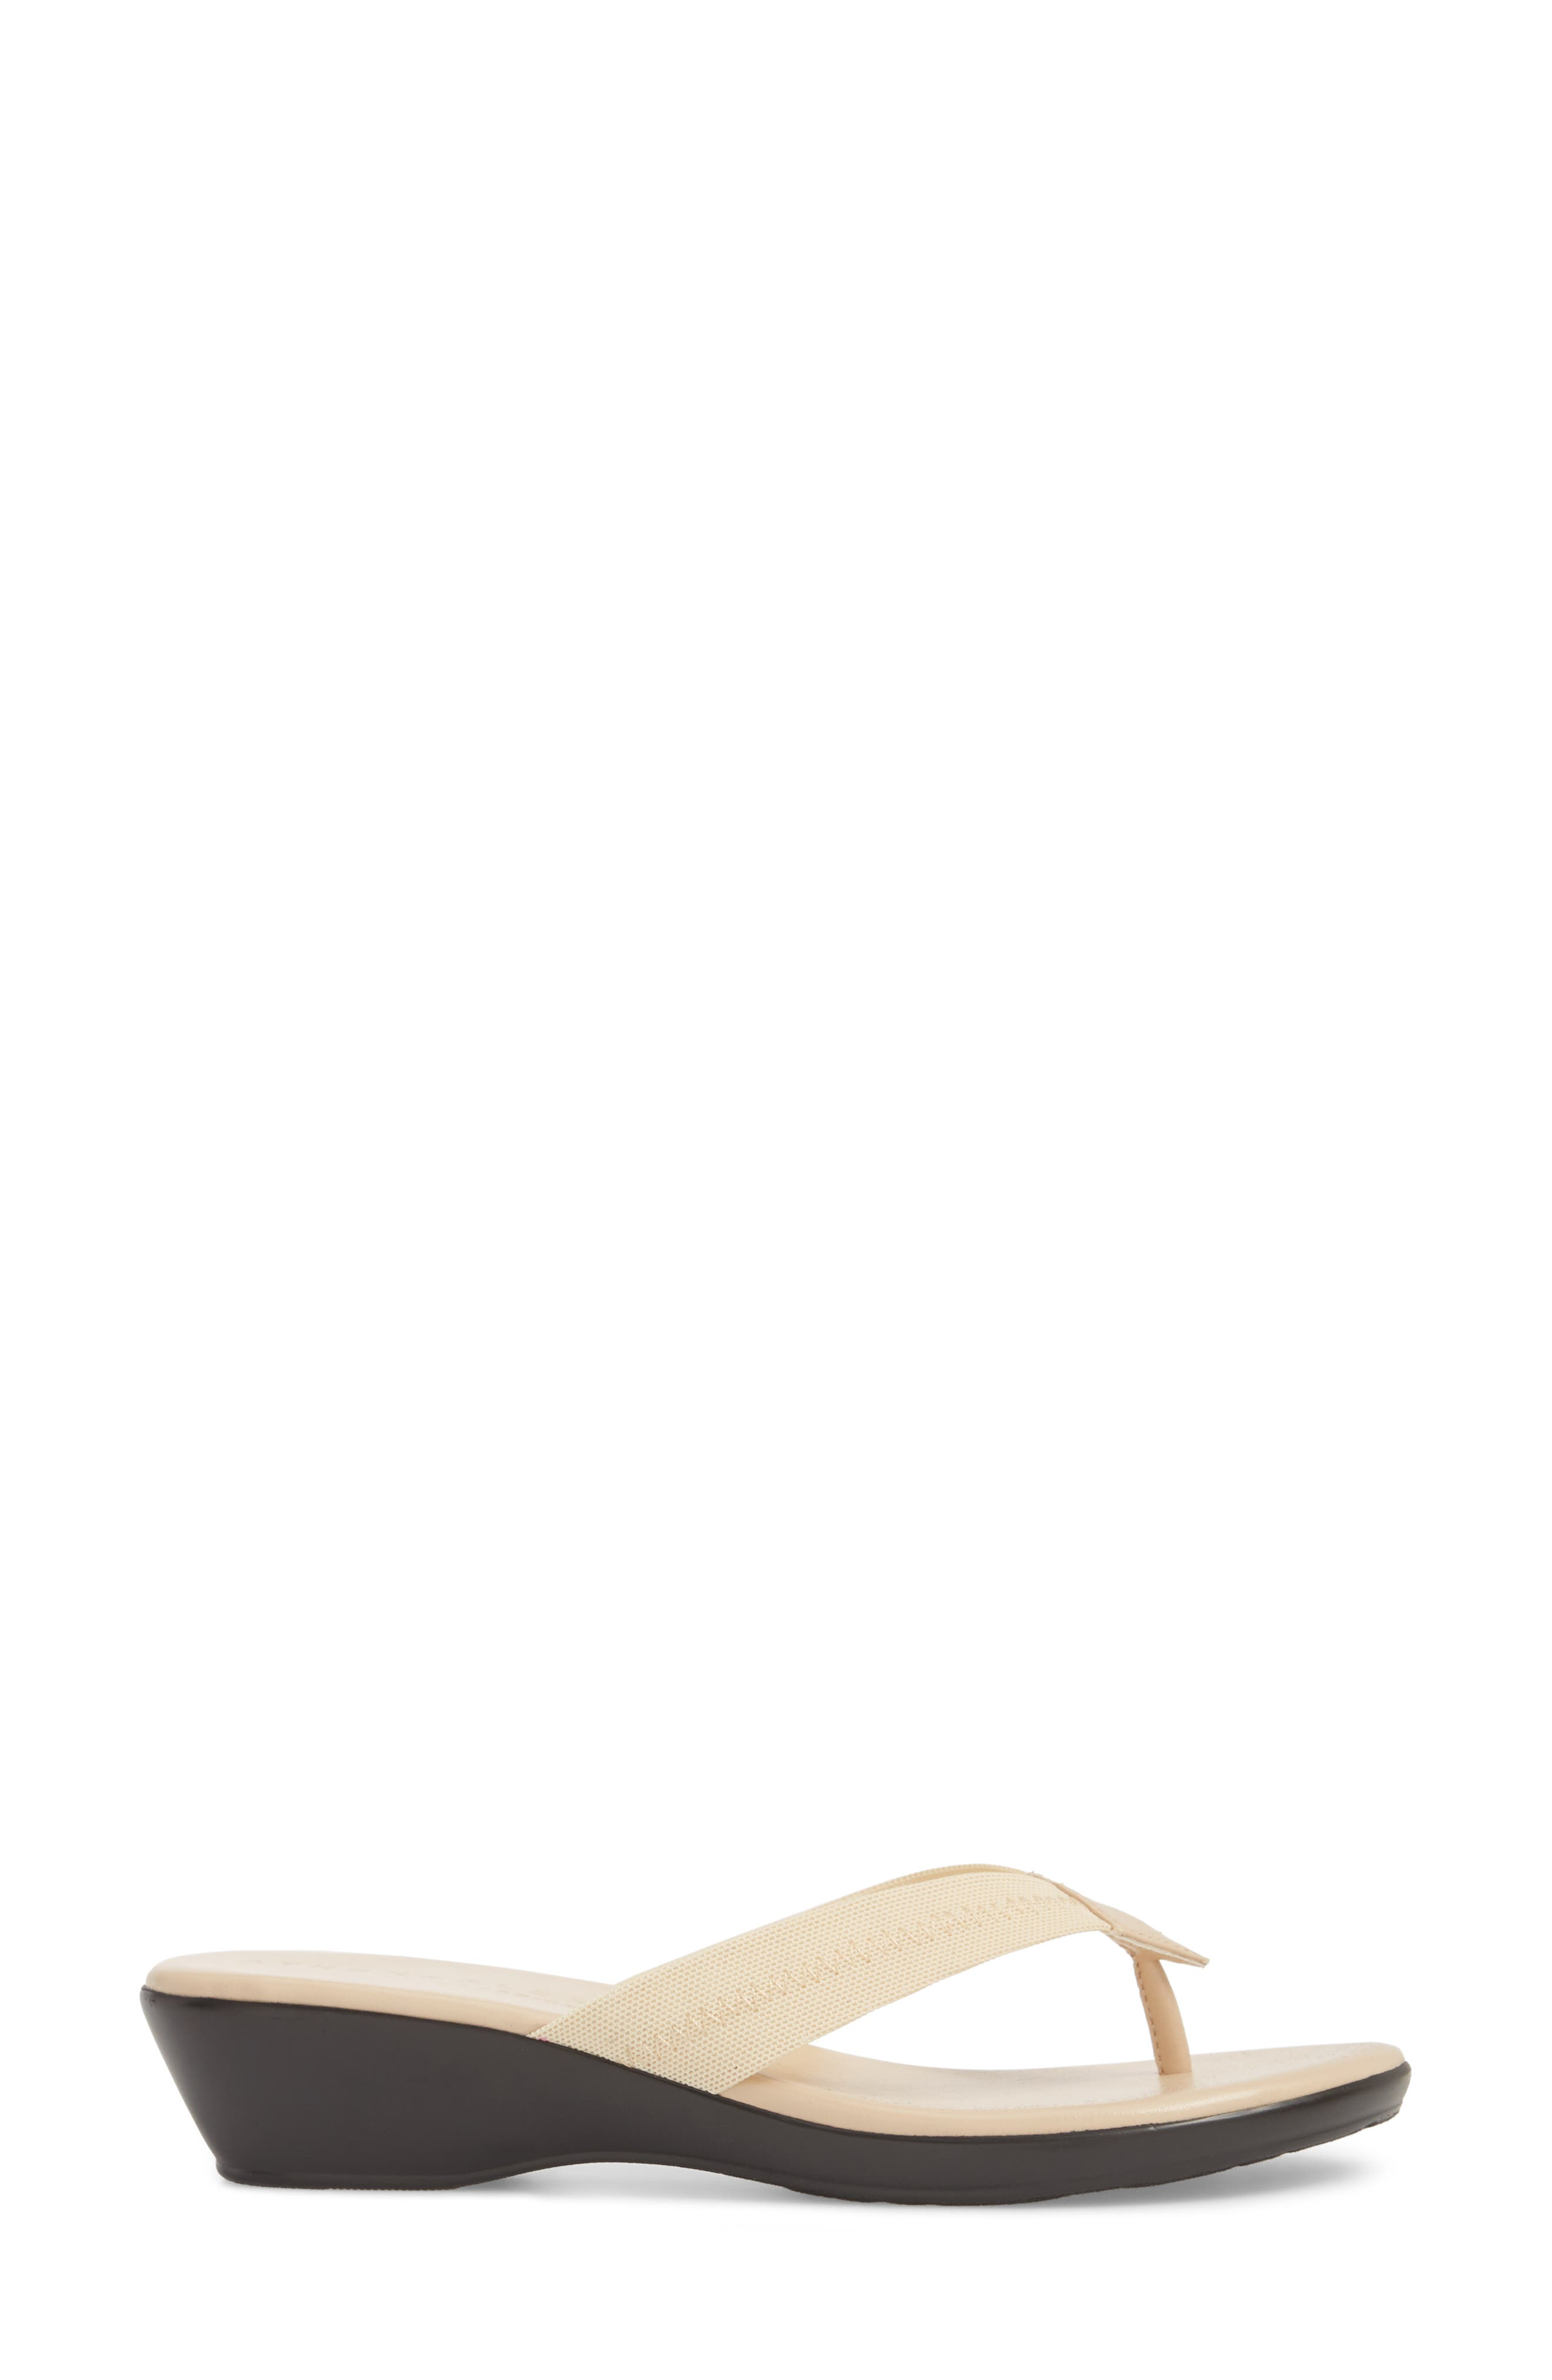 Ying Flip Flop,                             Alternate thumbnail 3, color,                             BEIGE STRETCH FABRIC